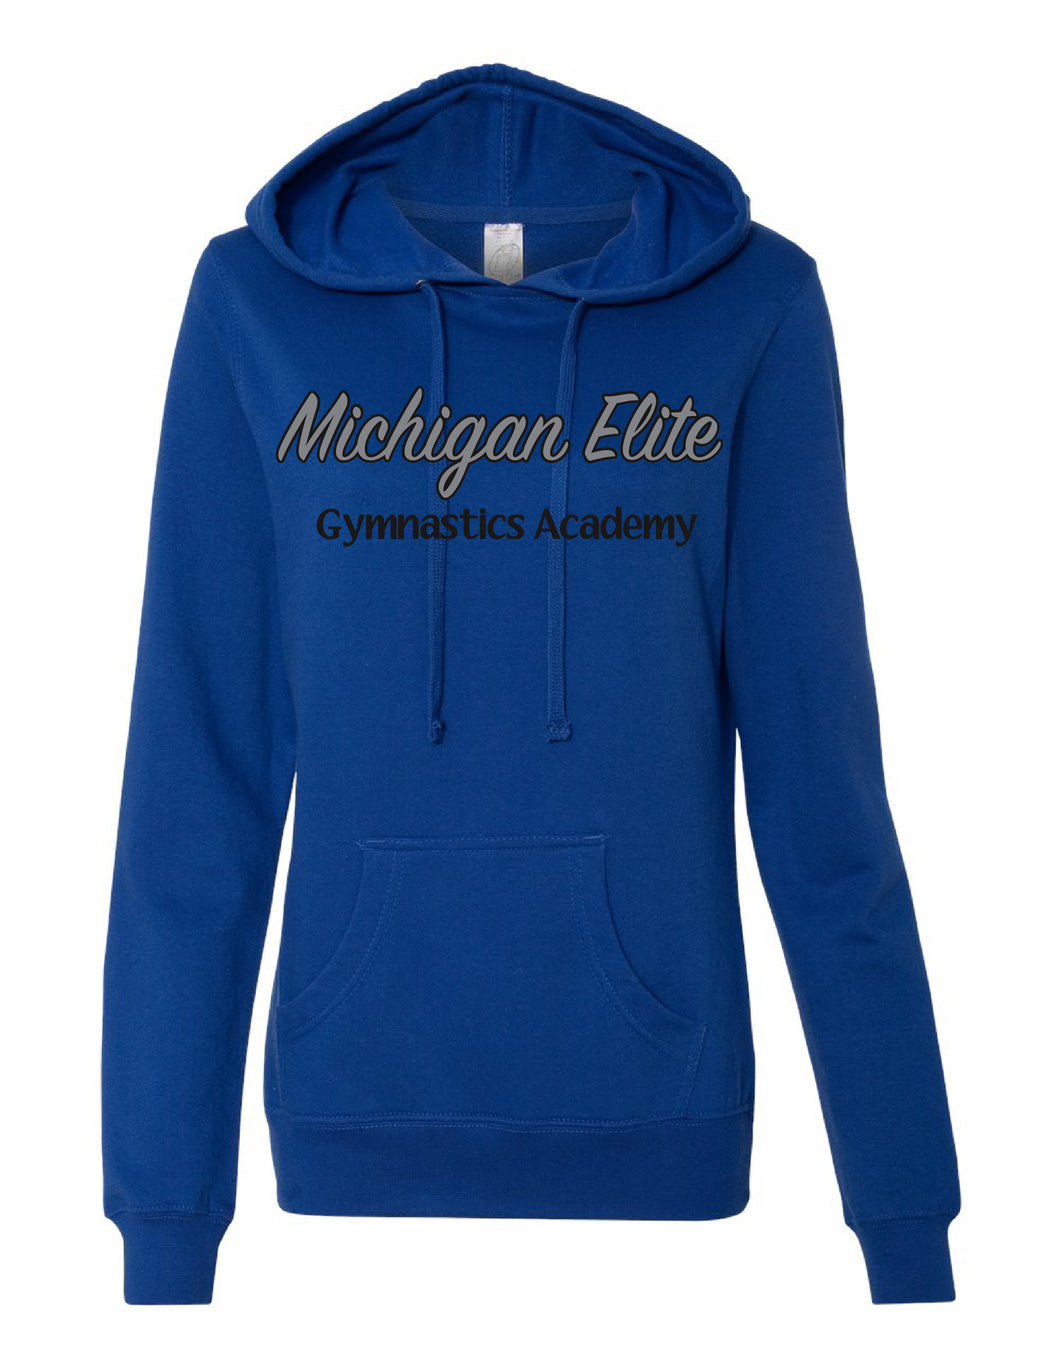 Michigan Elite Gymnastics Academy - Ladies Cobalt Hoodie